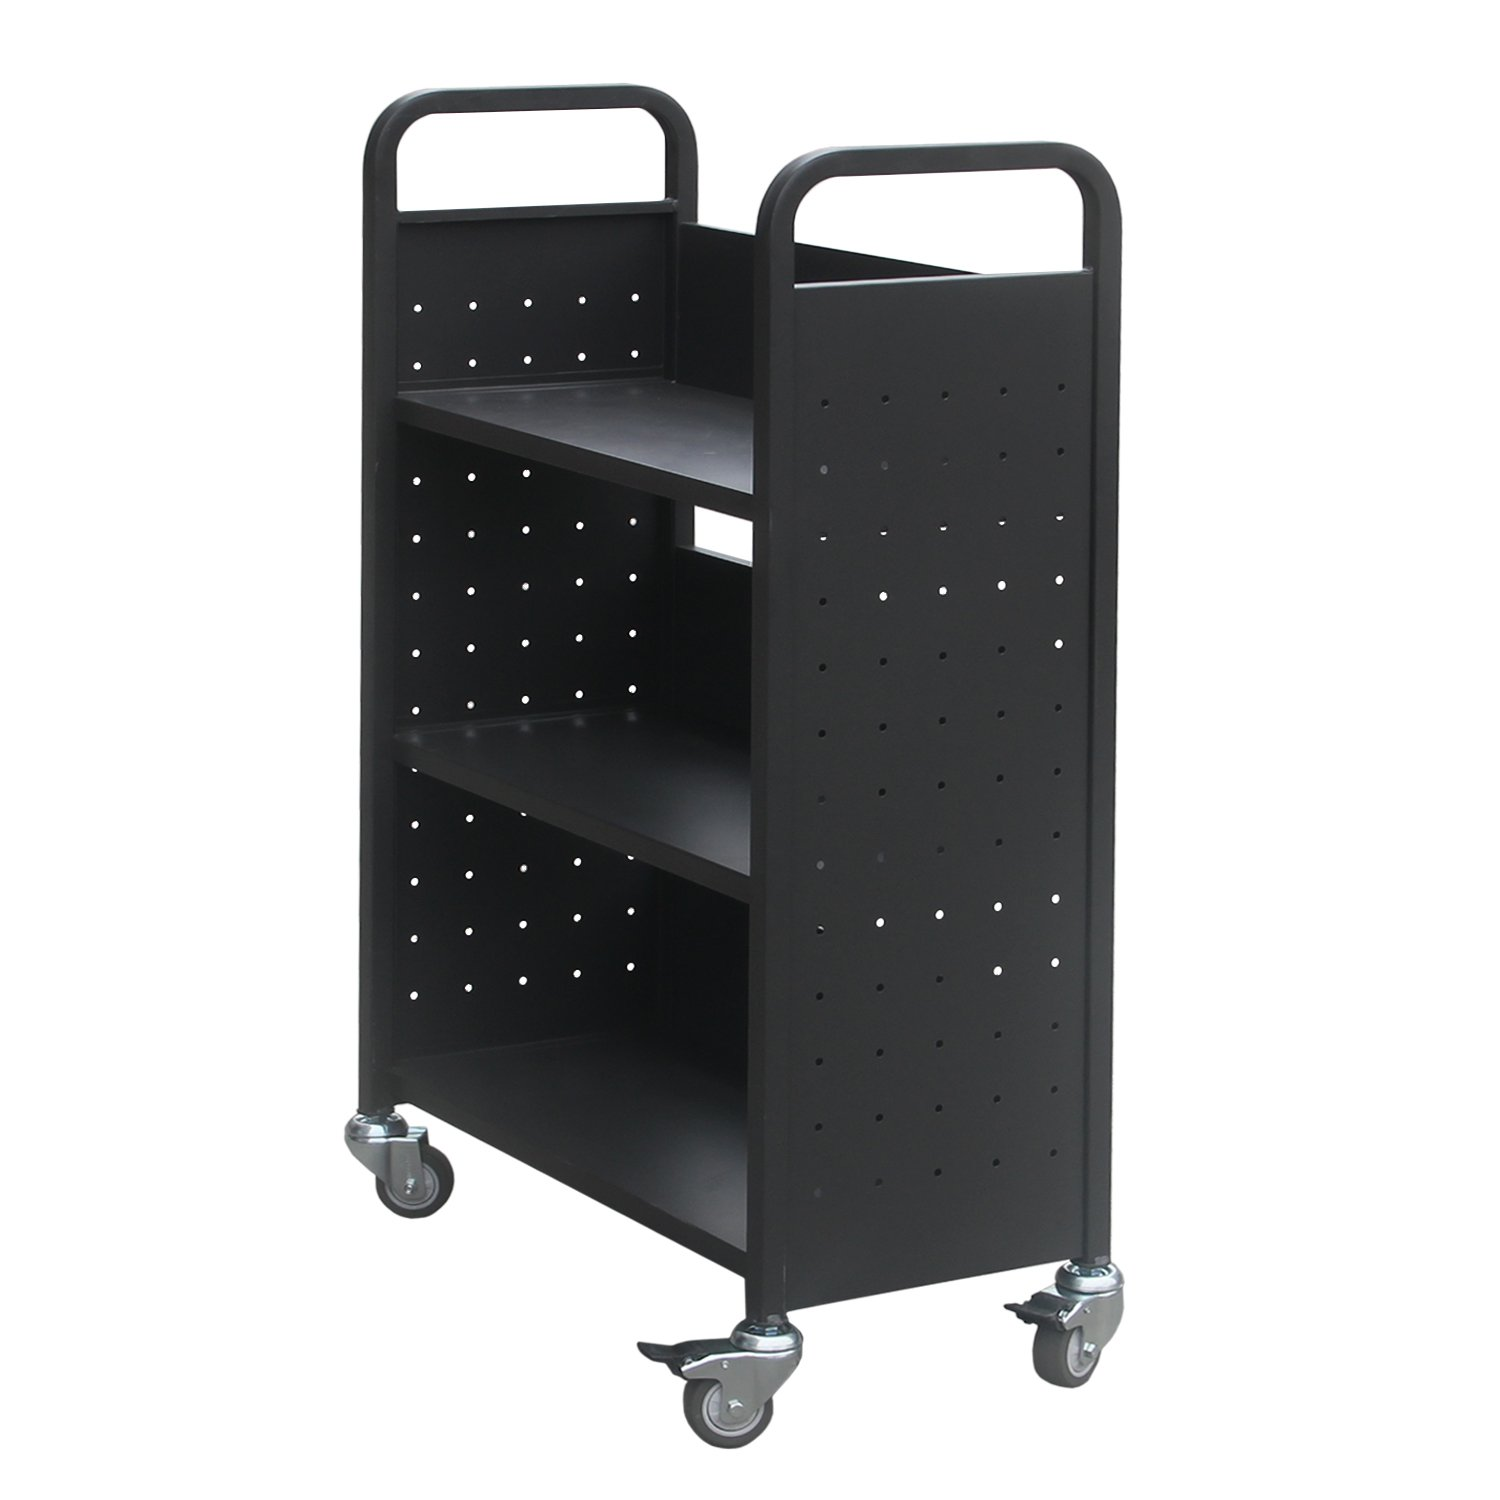 Rolling Library Book Cart Single Sided Flat Shelves with Lockable Wheels,200lbs Capacity (Black) by Alice